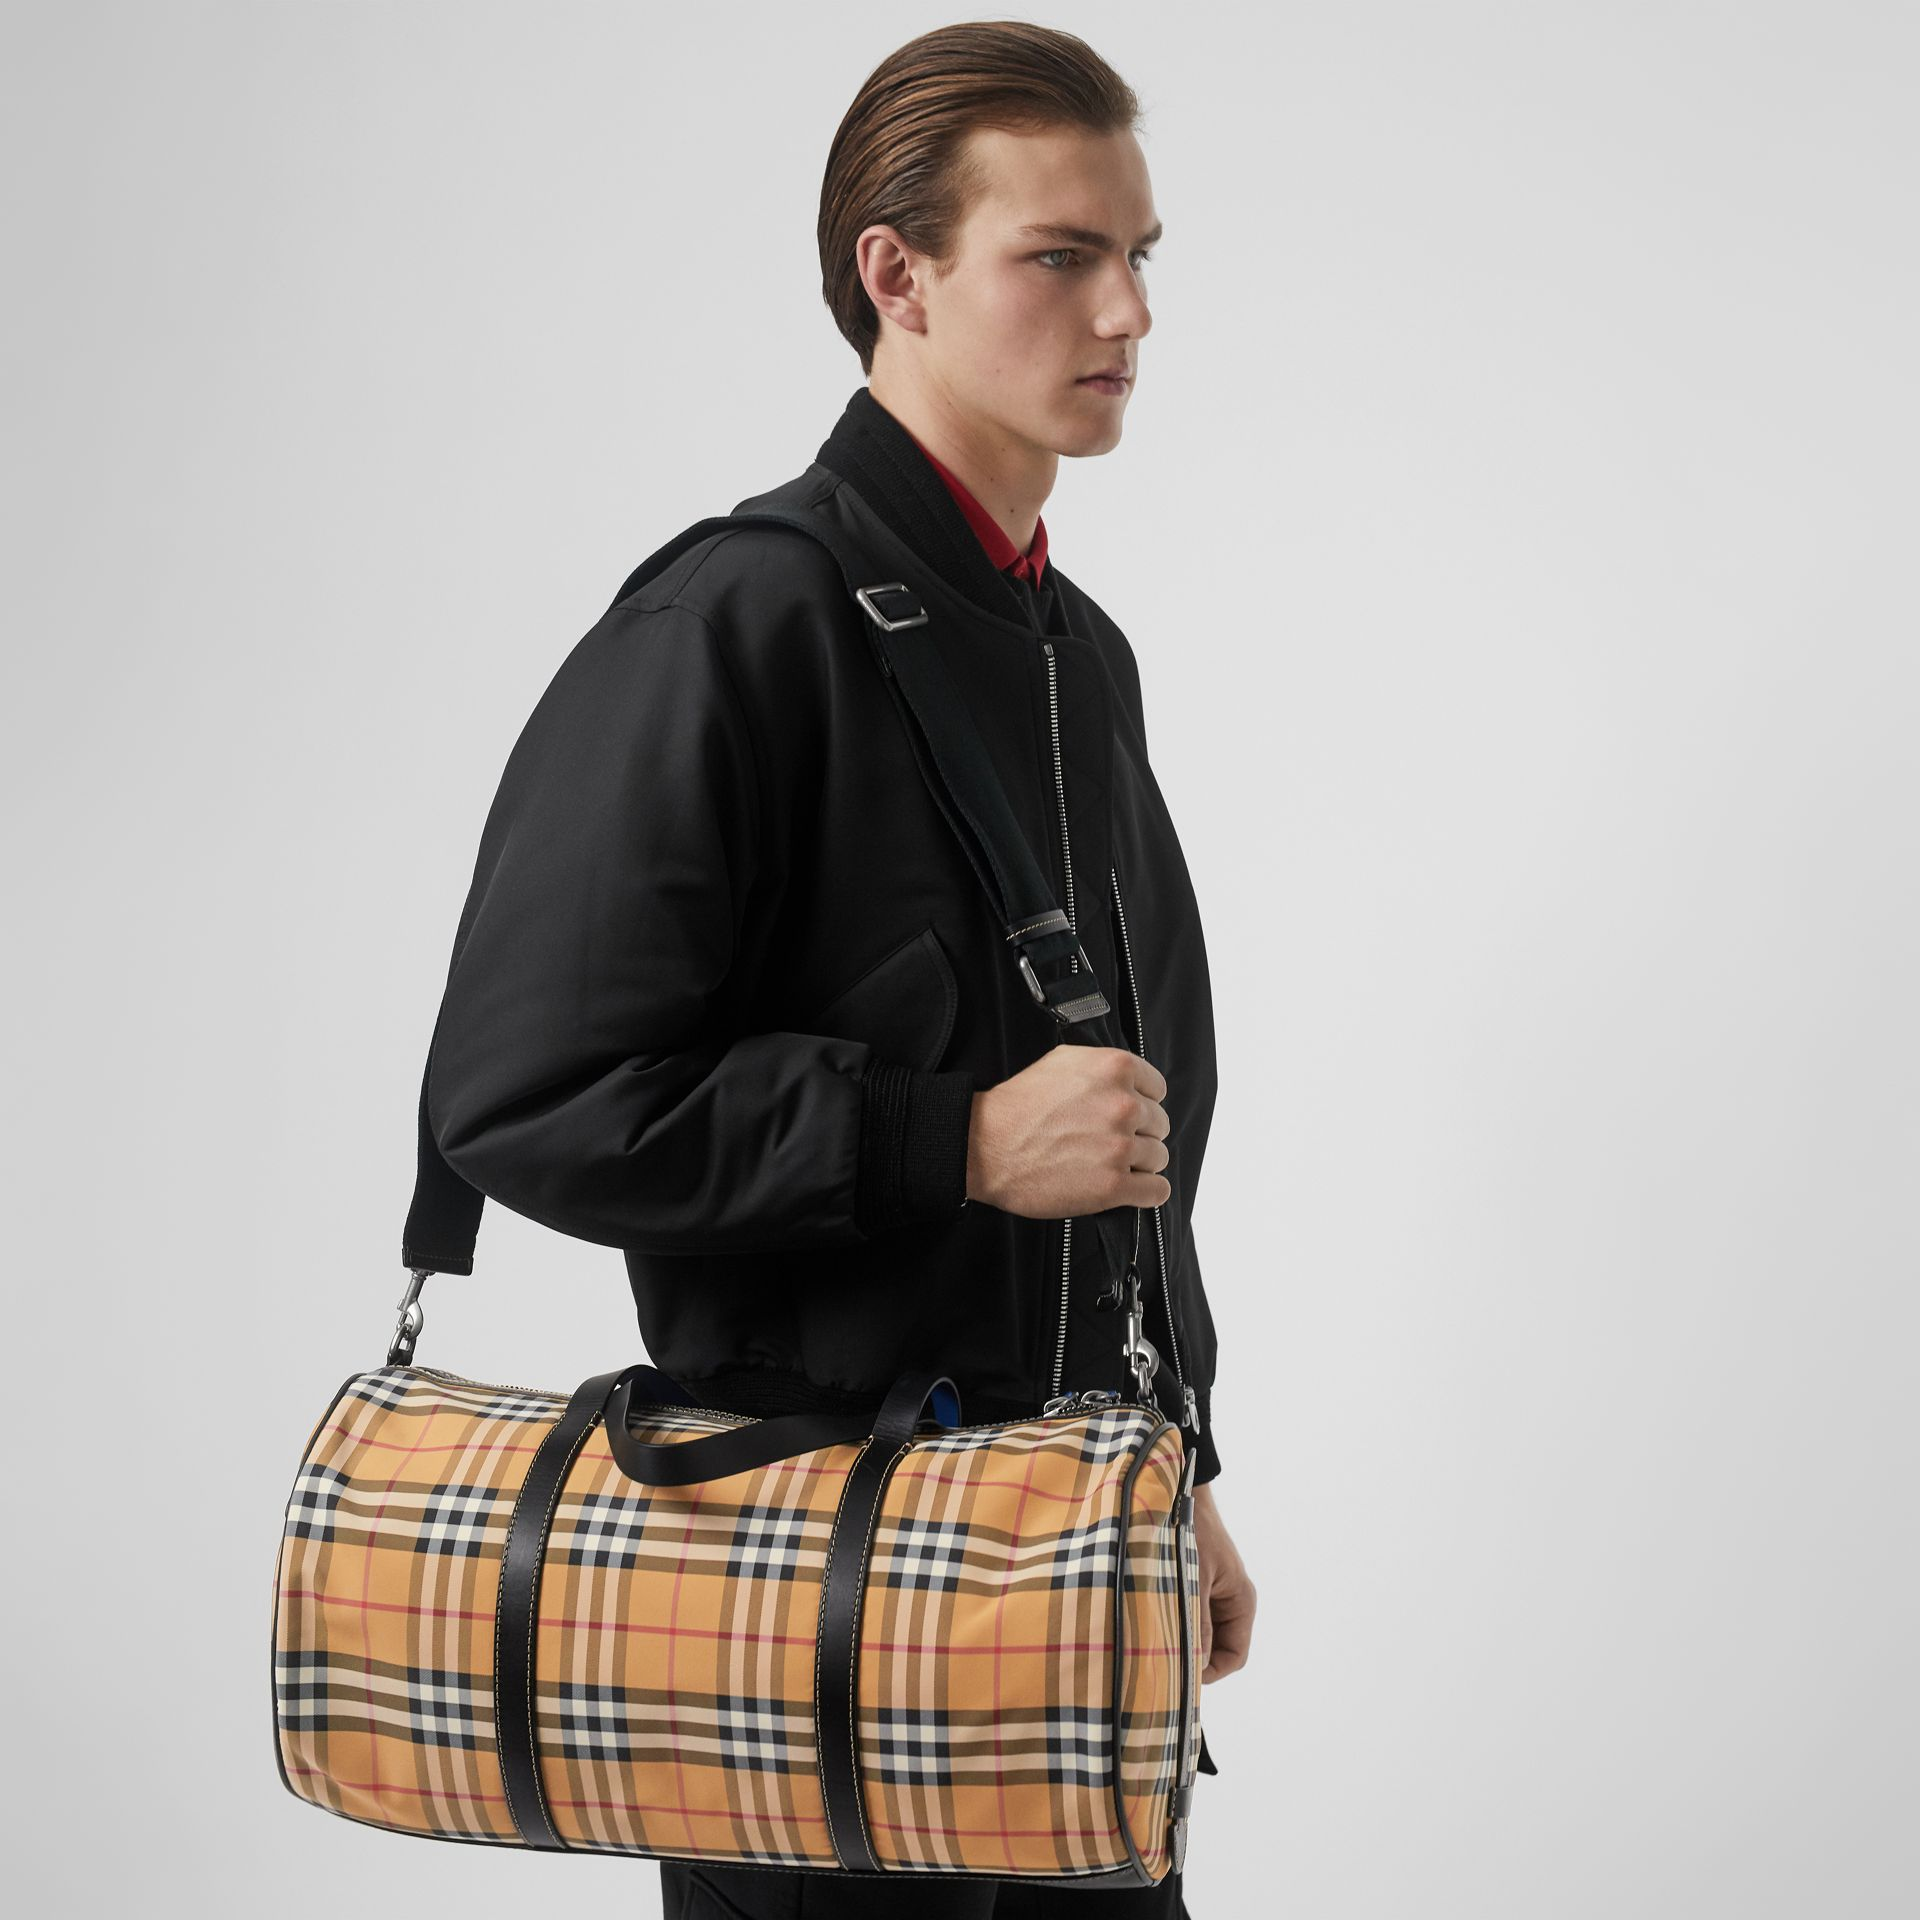 Sac The Barrel moyen en cuir et à motif Vintage check (Jaune Antique) - Homme | Burberry Canada - photo de la galerie 5